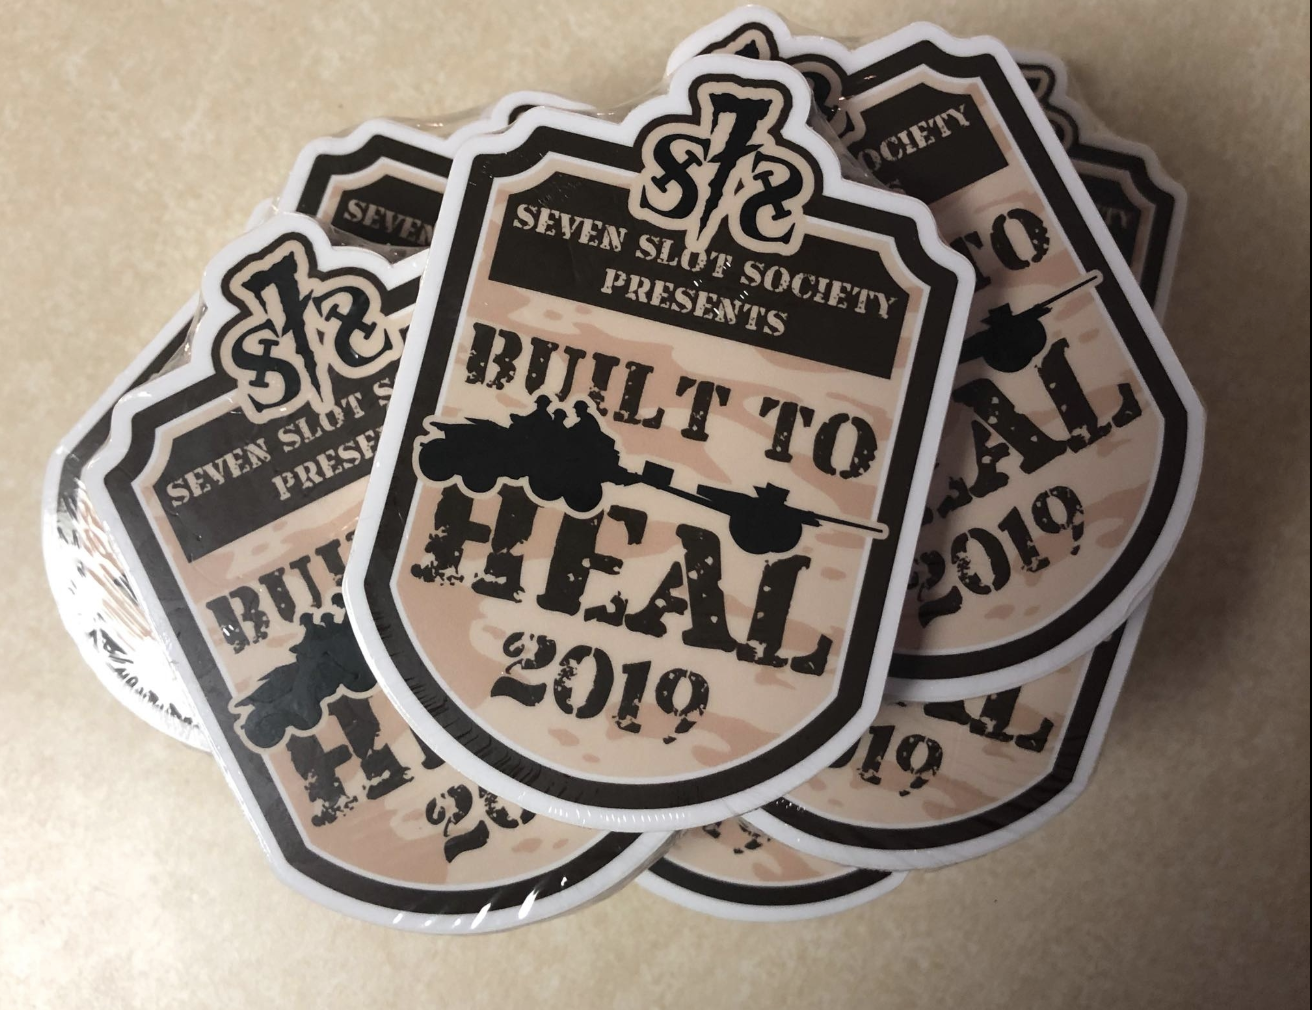 Built to Heal 2019 Review